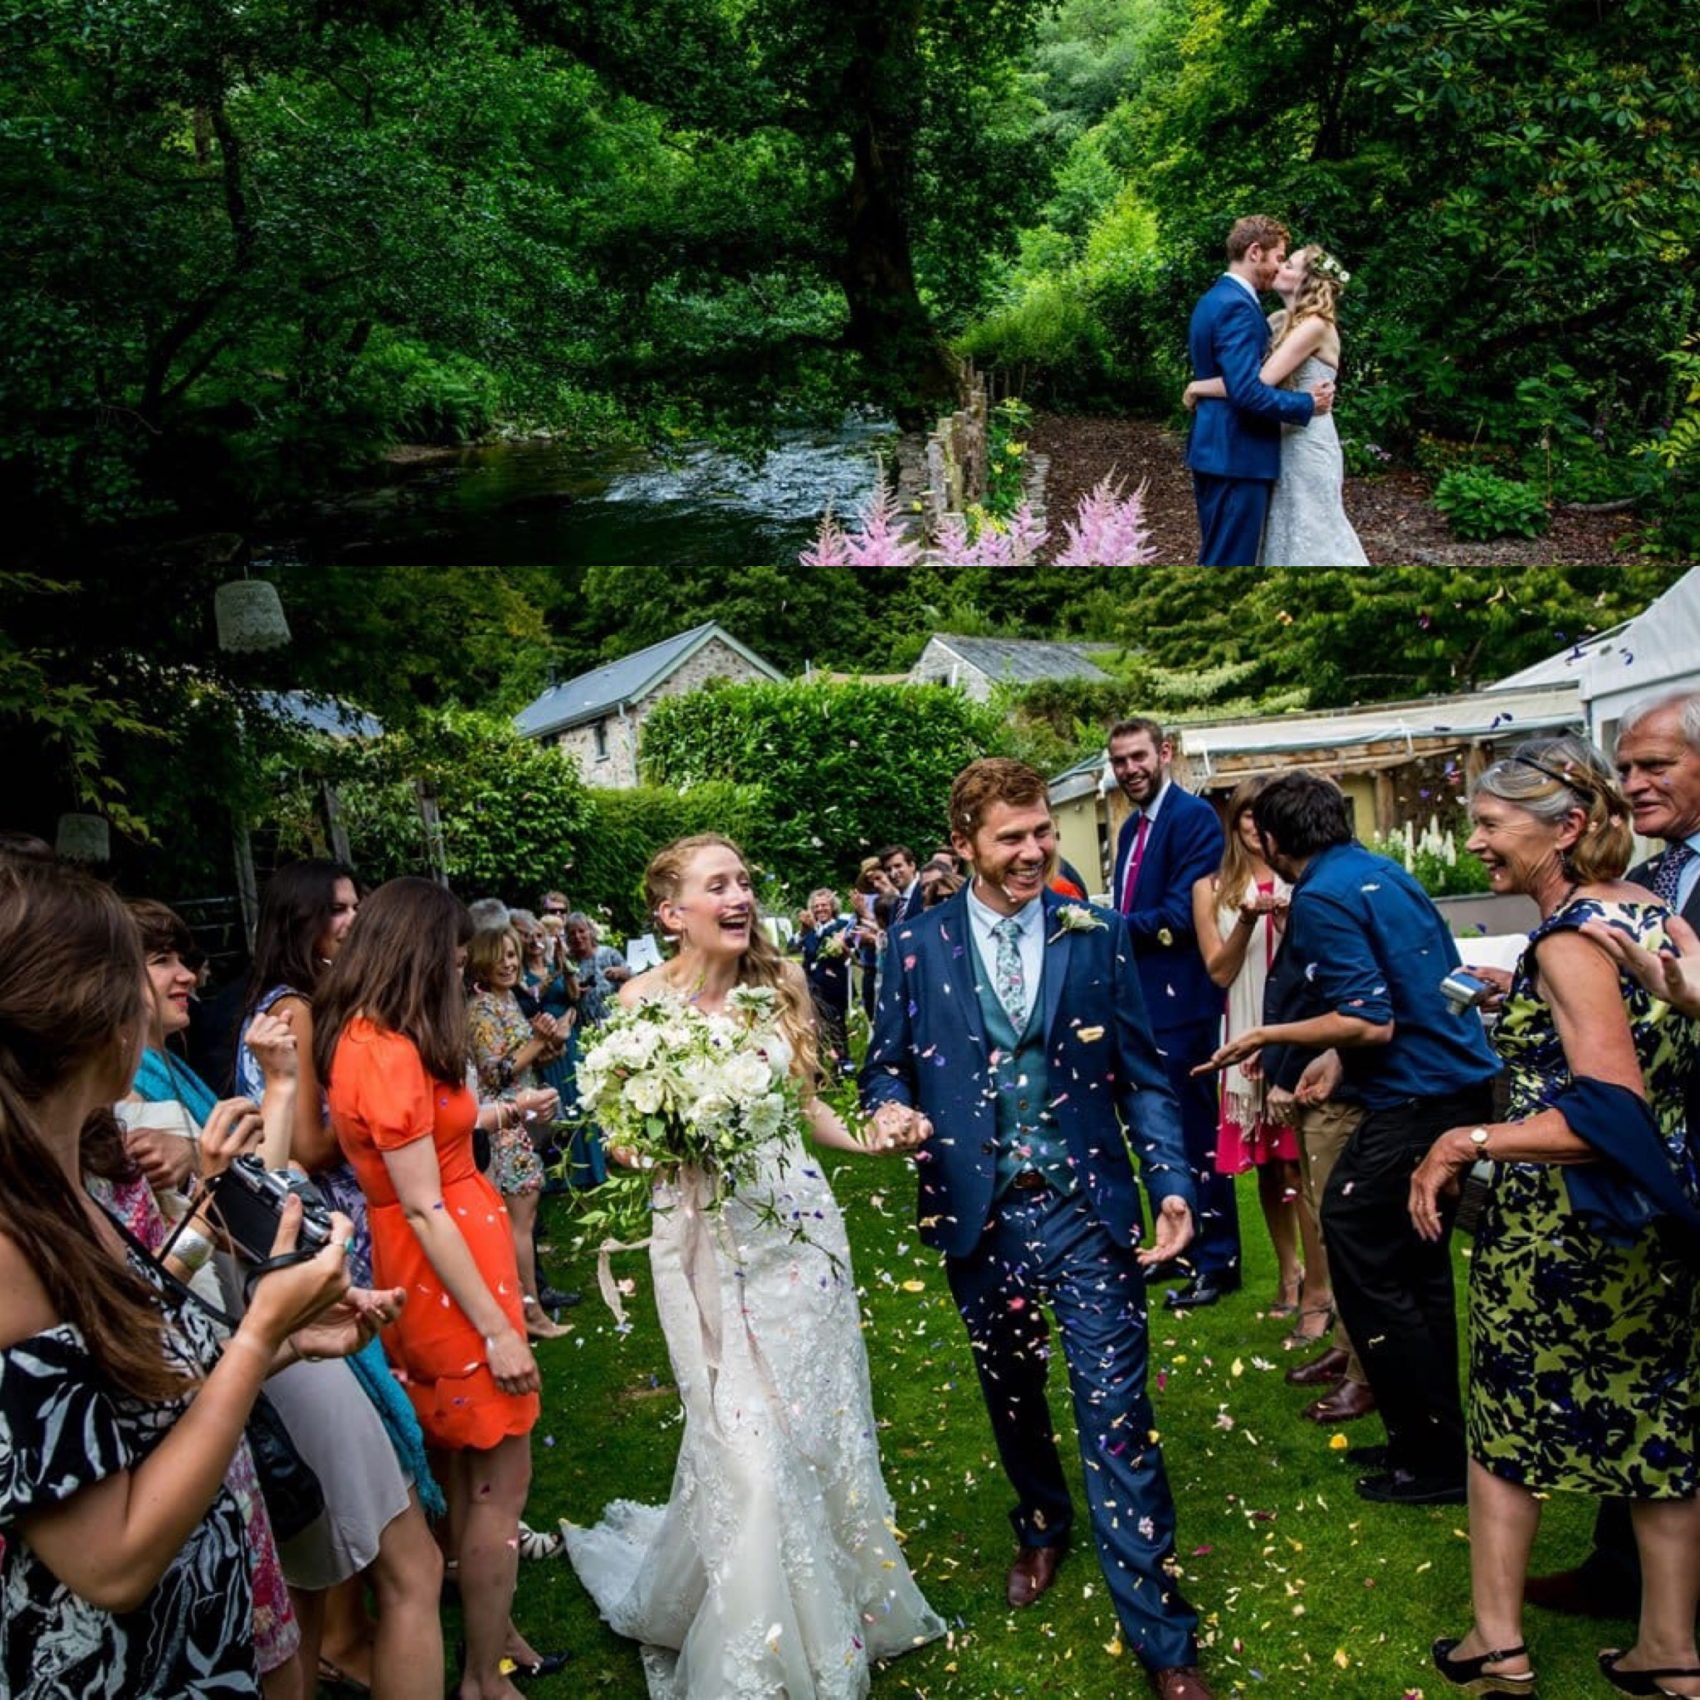 Woodland, wedding, ever after, lower grenofen, guests, friends, wedding party, greenery, woods, flowers, confetti, shot, colour, trees, party